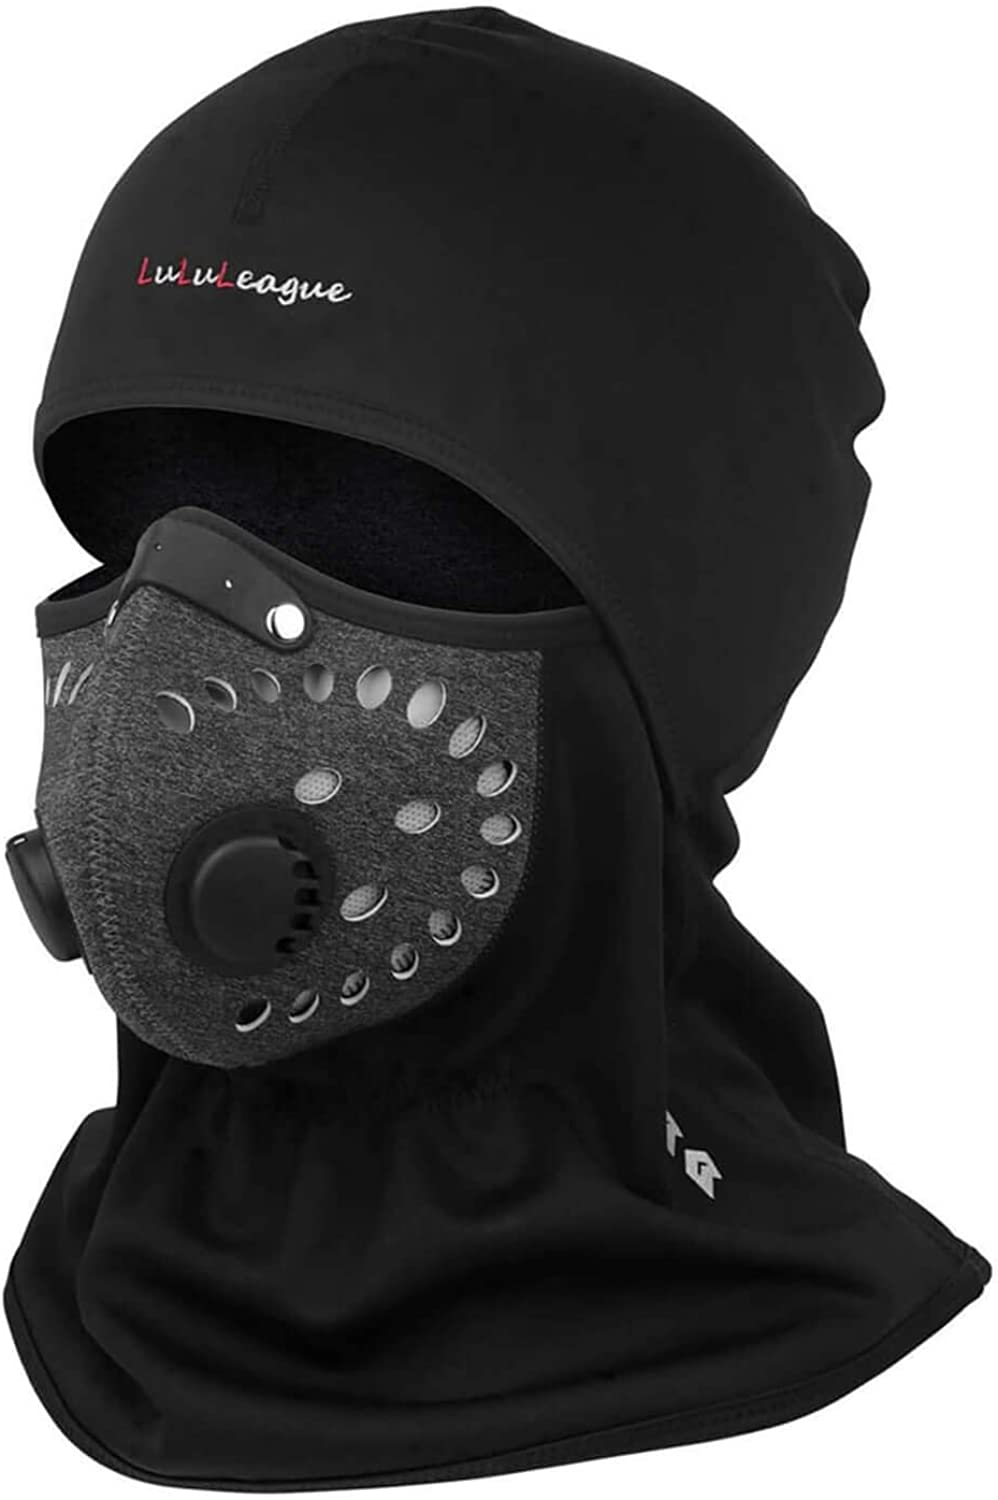 Balaclava, Face Mask Men,Winter Face Cover for Women Adjustable Windproof, Winter Balaclava for Motorcycle Riding, Skiing & Snowboarding Black